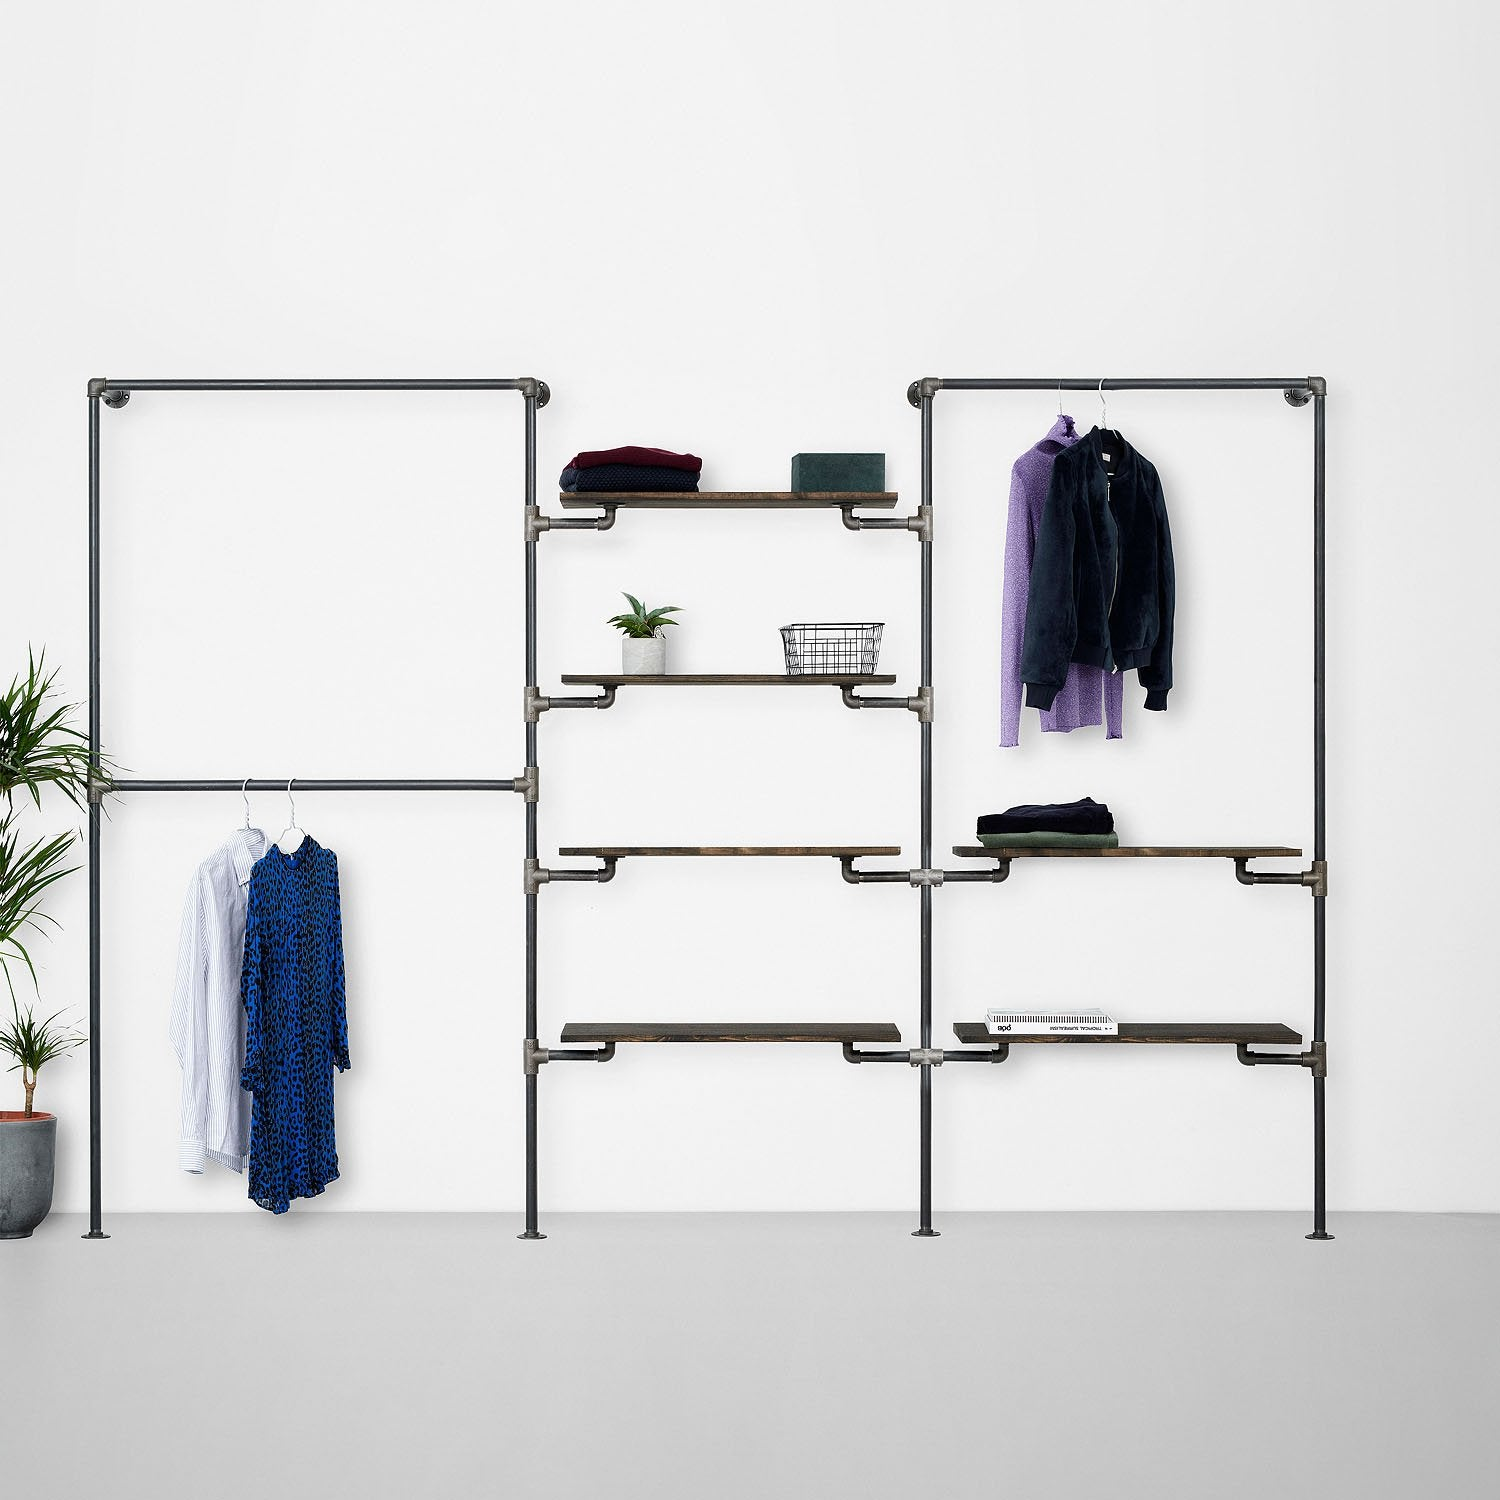 The Walk-In 3 row wardrobe system - 2 rails / 4 shelves/ 1 rail, two shelves